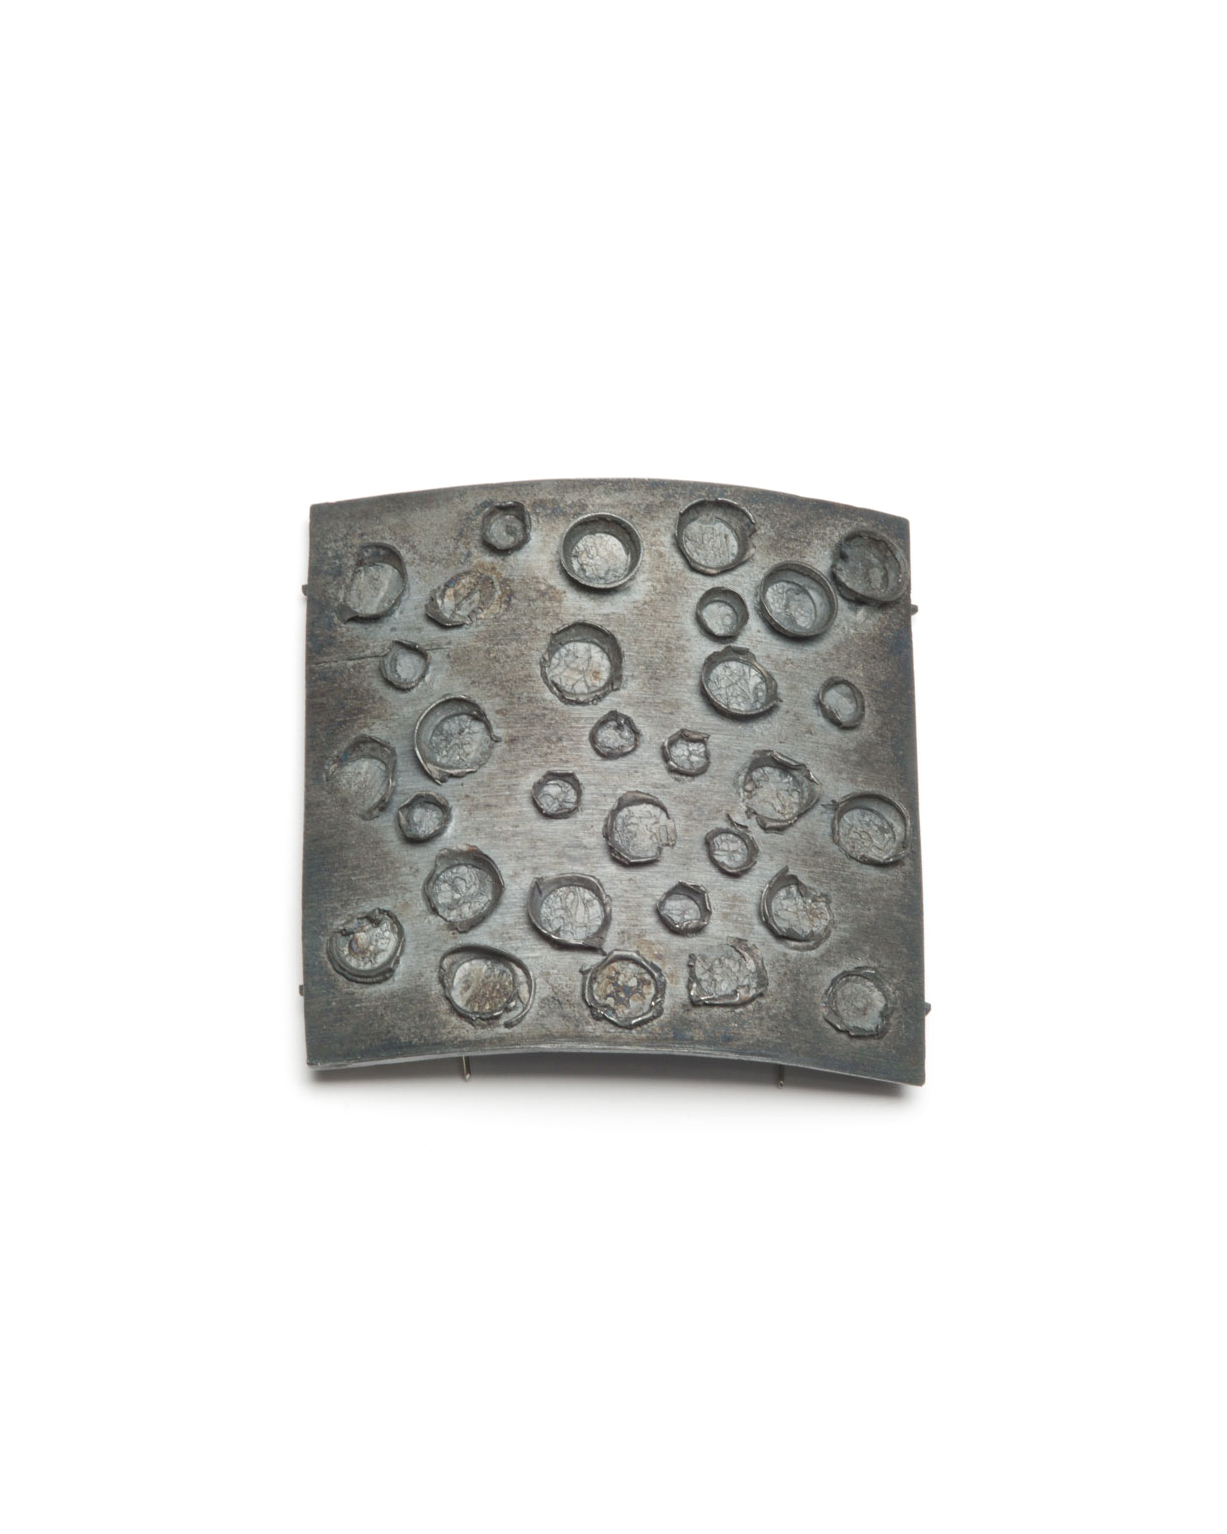 Winfried Krüger, untitled, 2007, brooch; oxidised silver, 80 x 80 mm, €1455